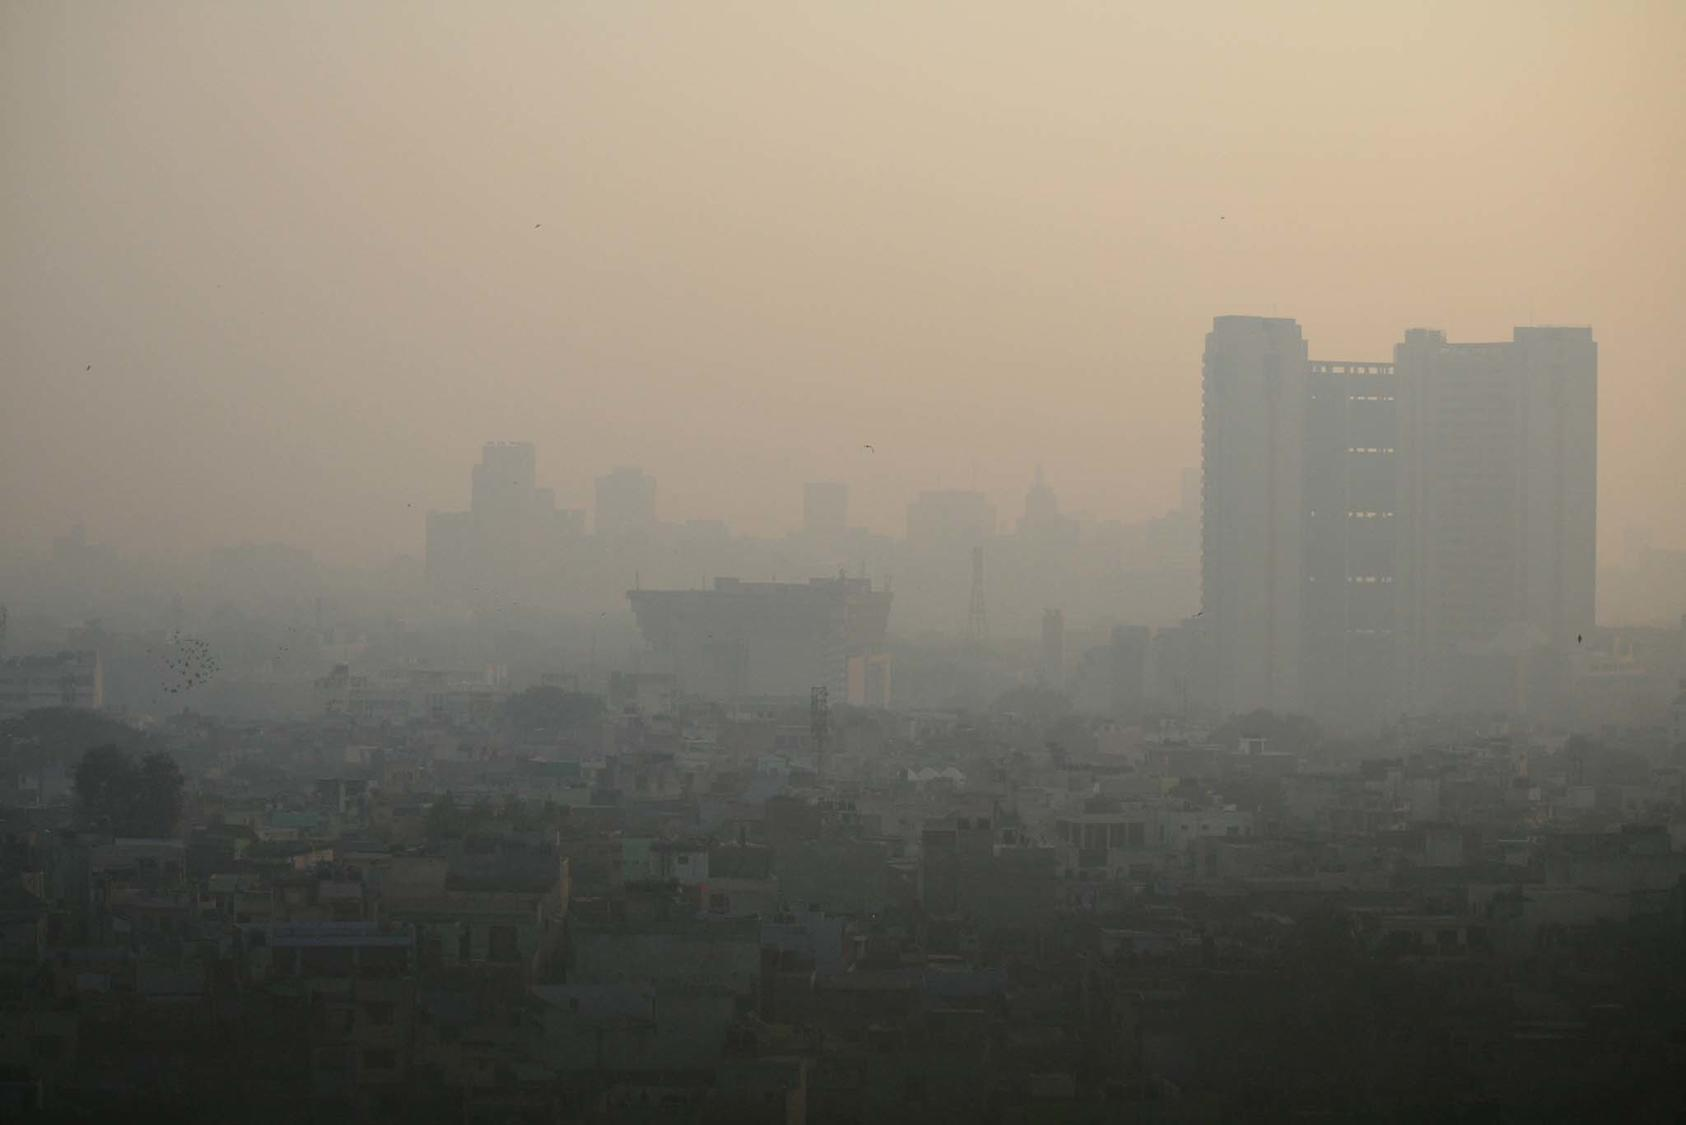 New Delhi's chronic smog has led the Indian capital to declare repeated medical emergencies. Even though 14 of the world's 15 most air-polluted cities are in India and Pakistan, the countries do not cooperate on the crisis. (J.E.Poirrier/CC License 2.0)